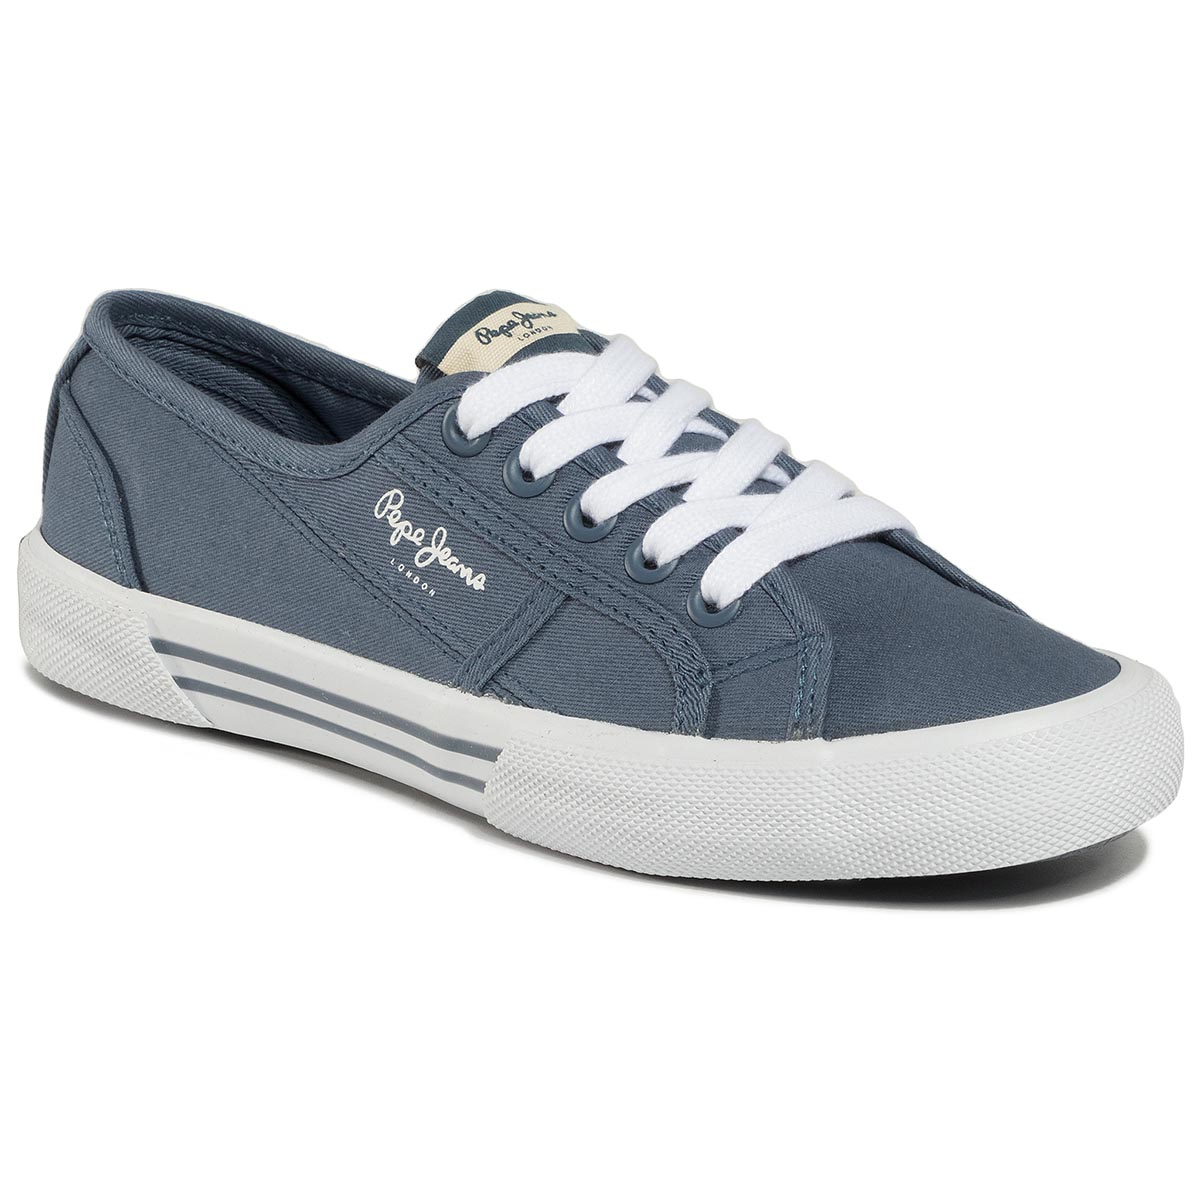 Teniși Pepe Jeans - Aberlady Eco Pls31016 Pop Blue 570 imagine epantofi.ro 2021